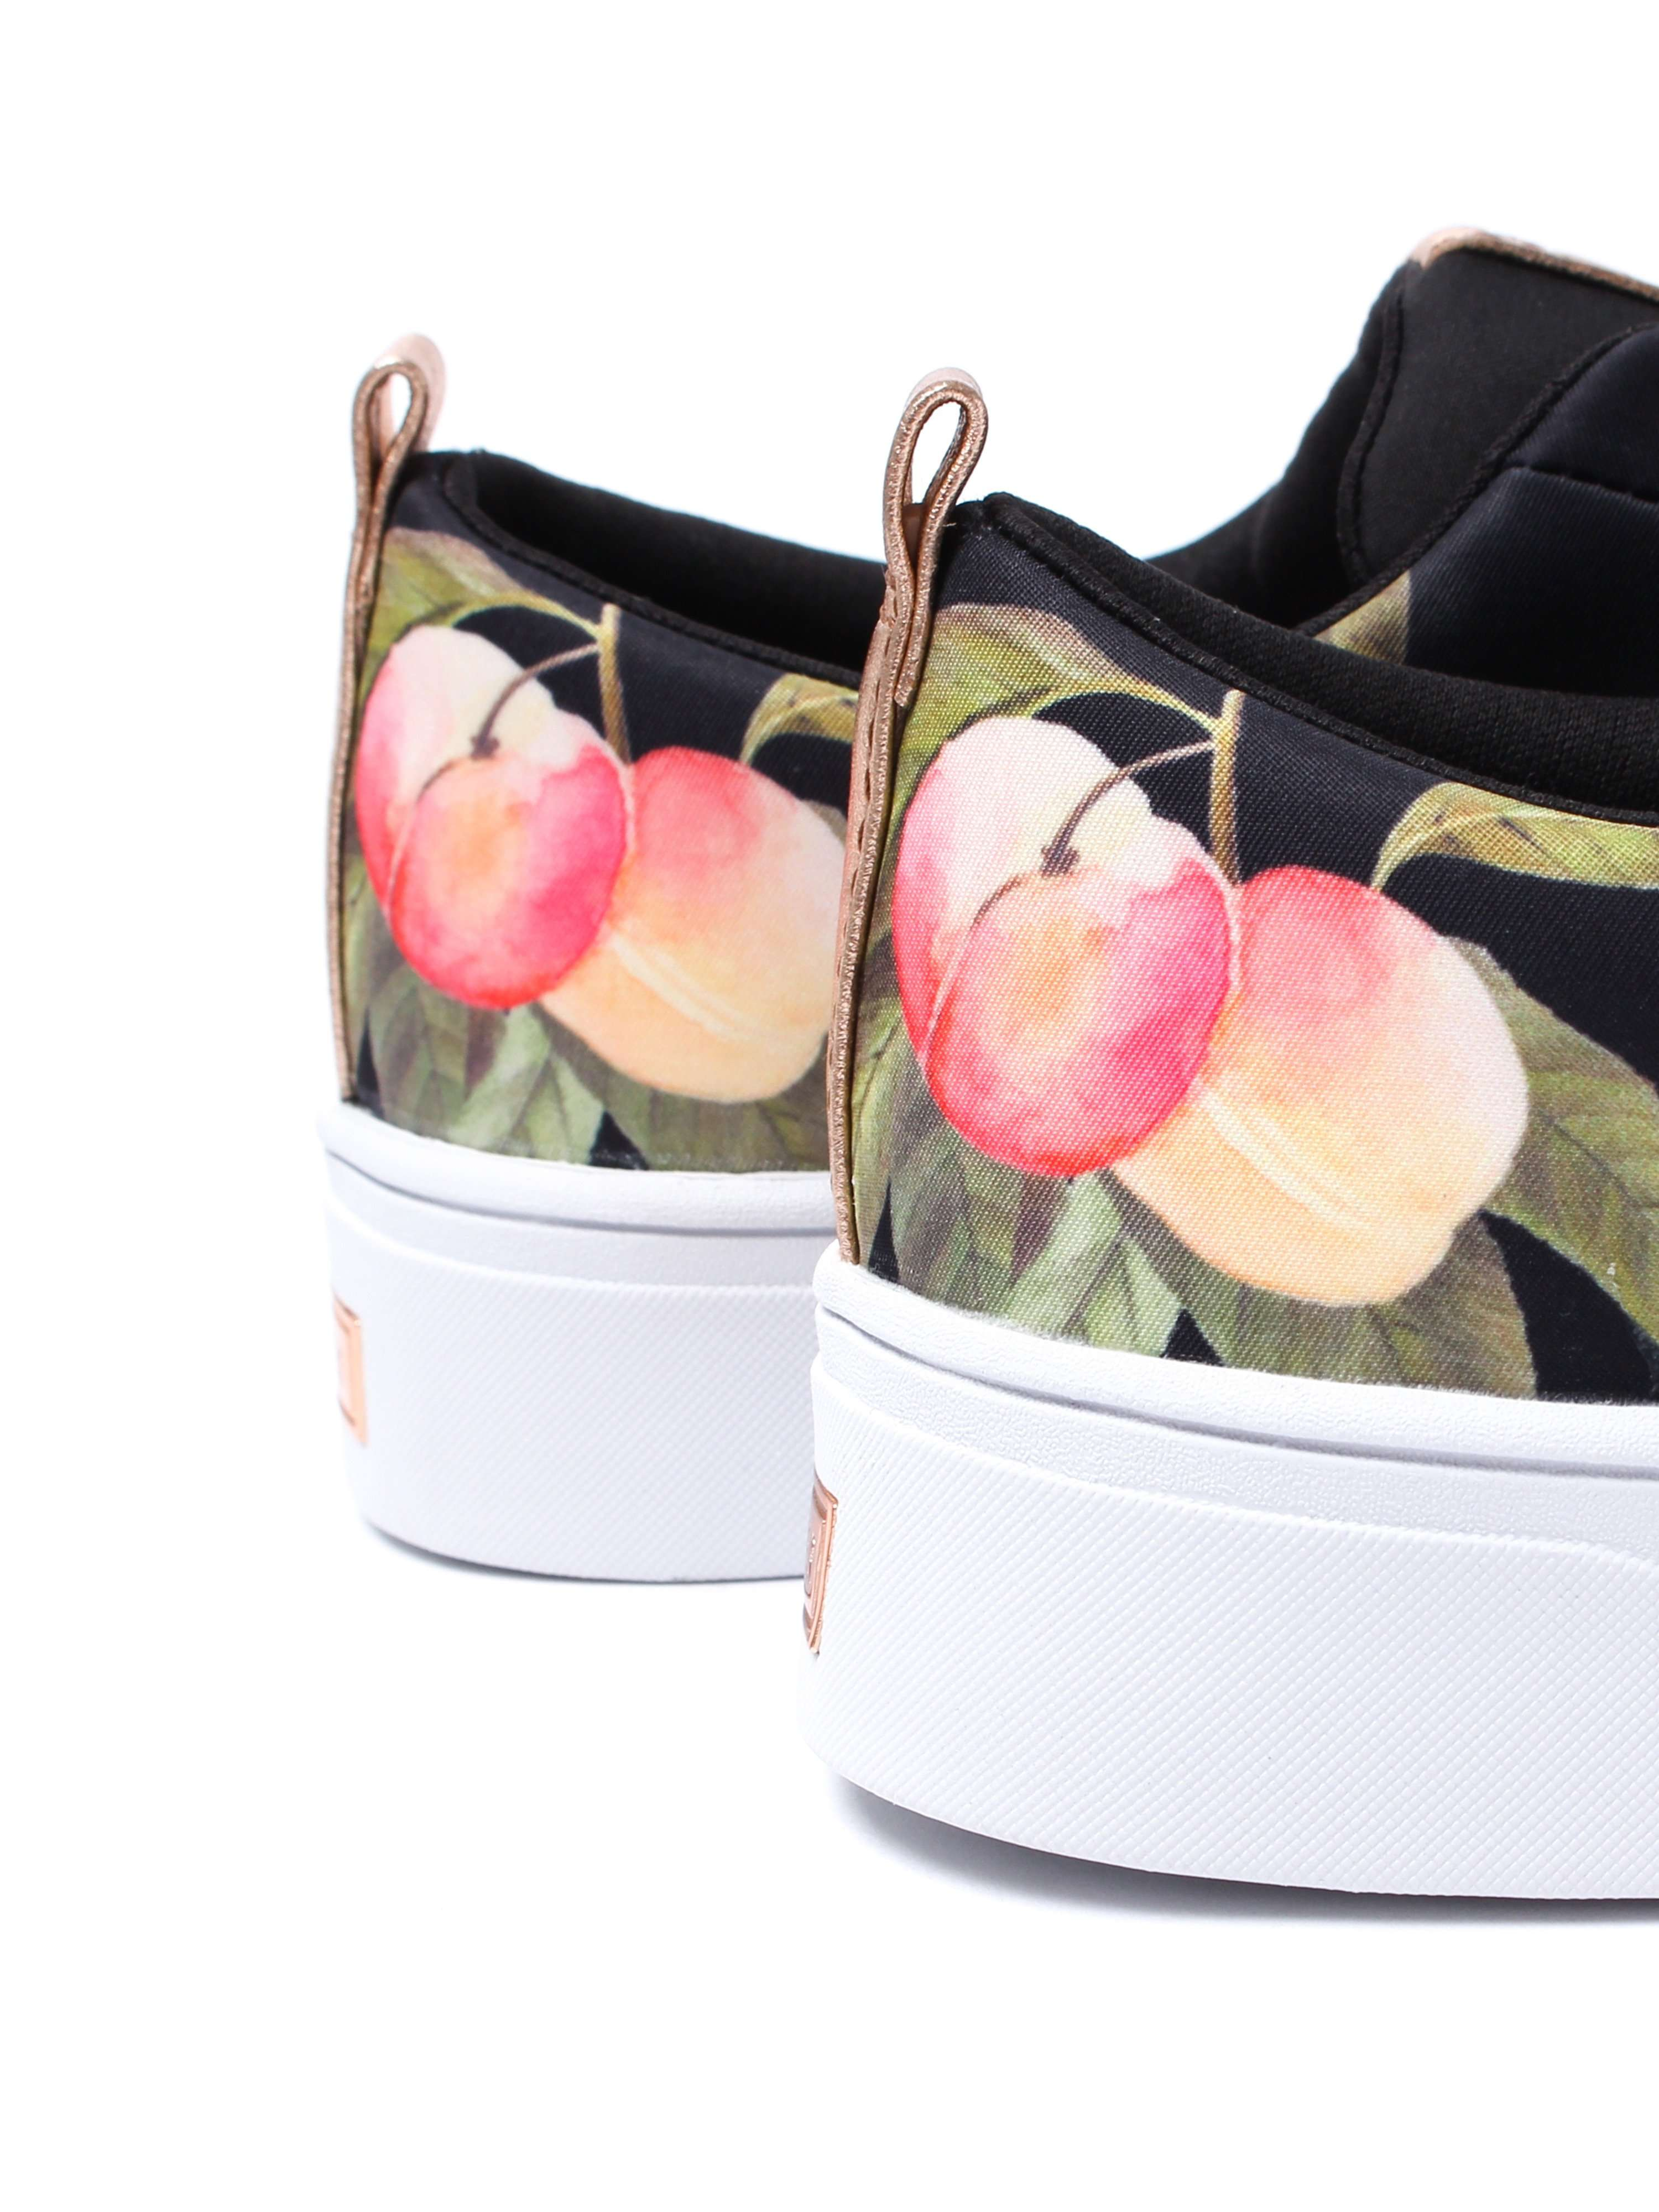 Ted Baker Women's Ahfira Trainers - Black Peach Blossom